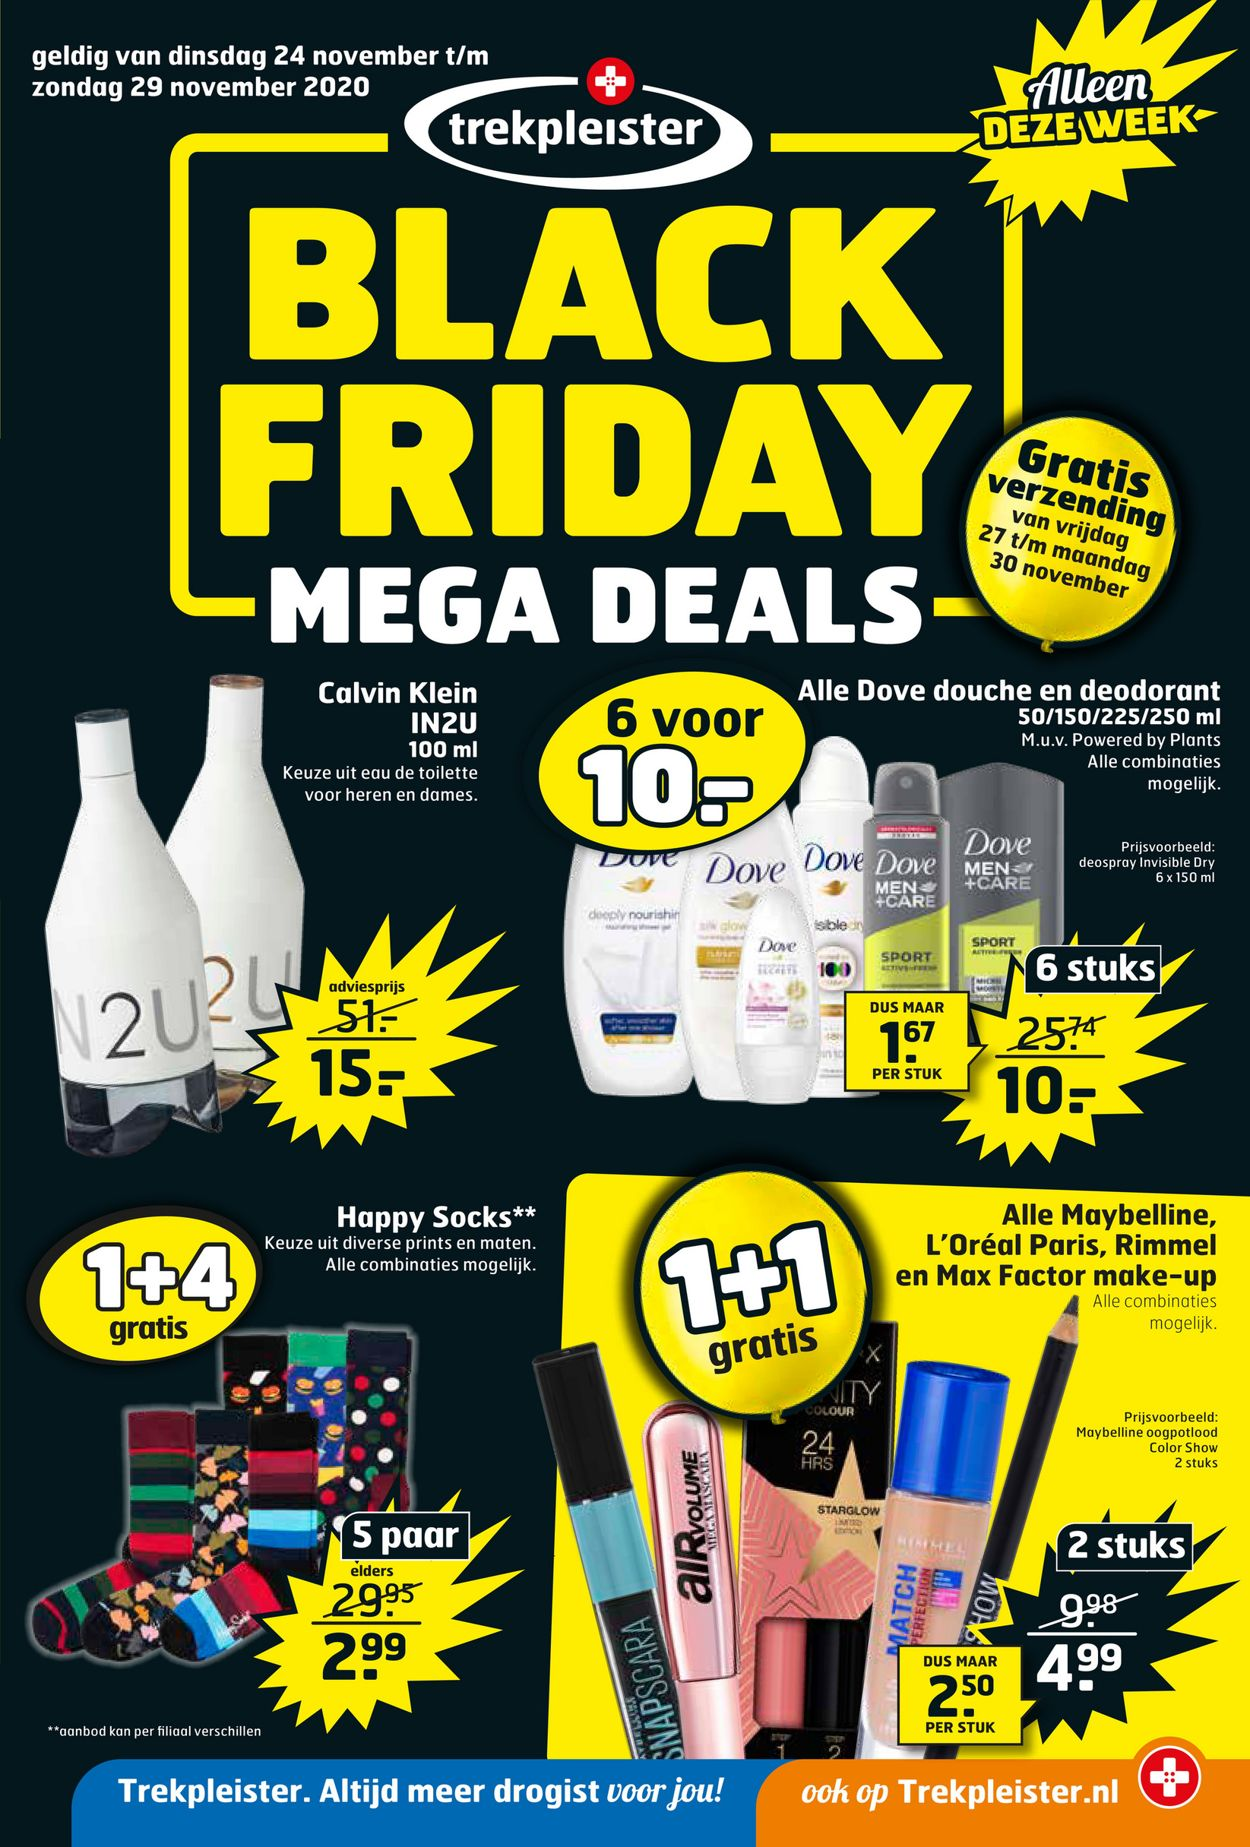 Catalogus van Trekpleister Black Friday 2020 van 24.11.2020